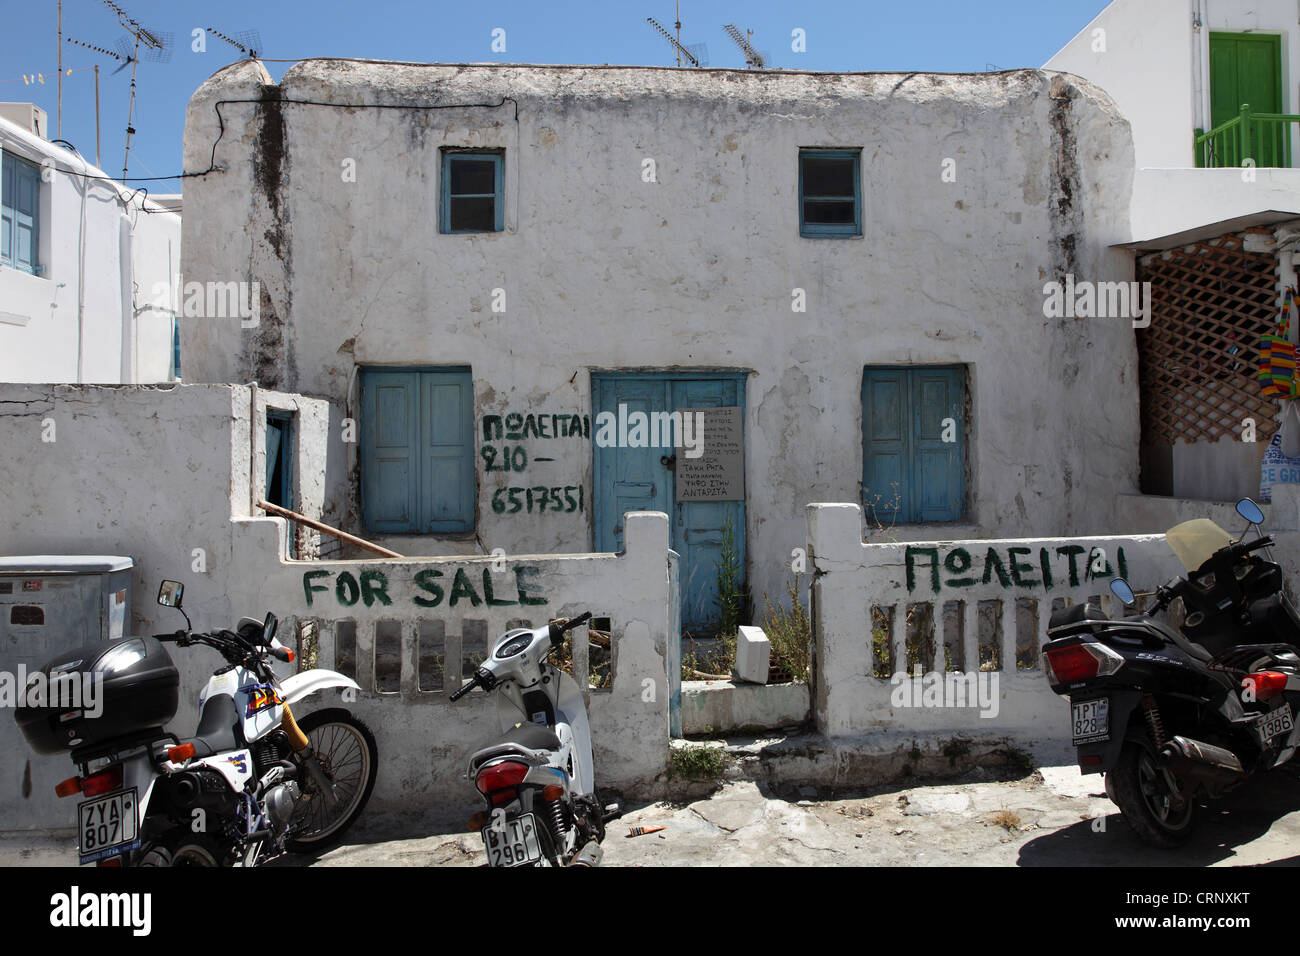 Derelict house for sale, Mykonos, Greece Stock Photo